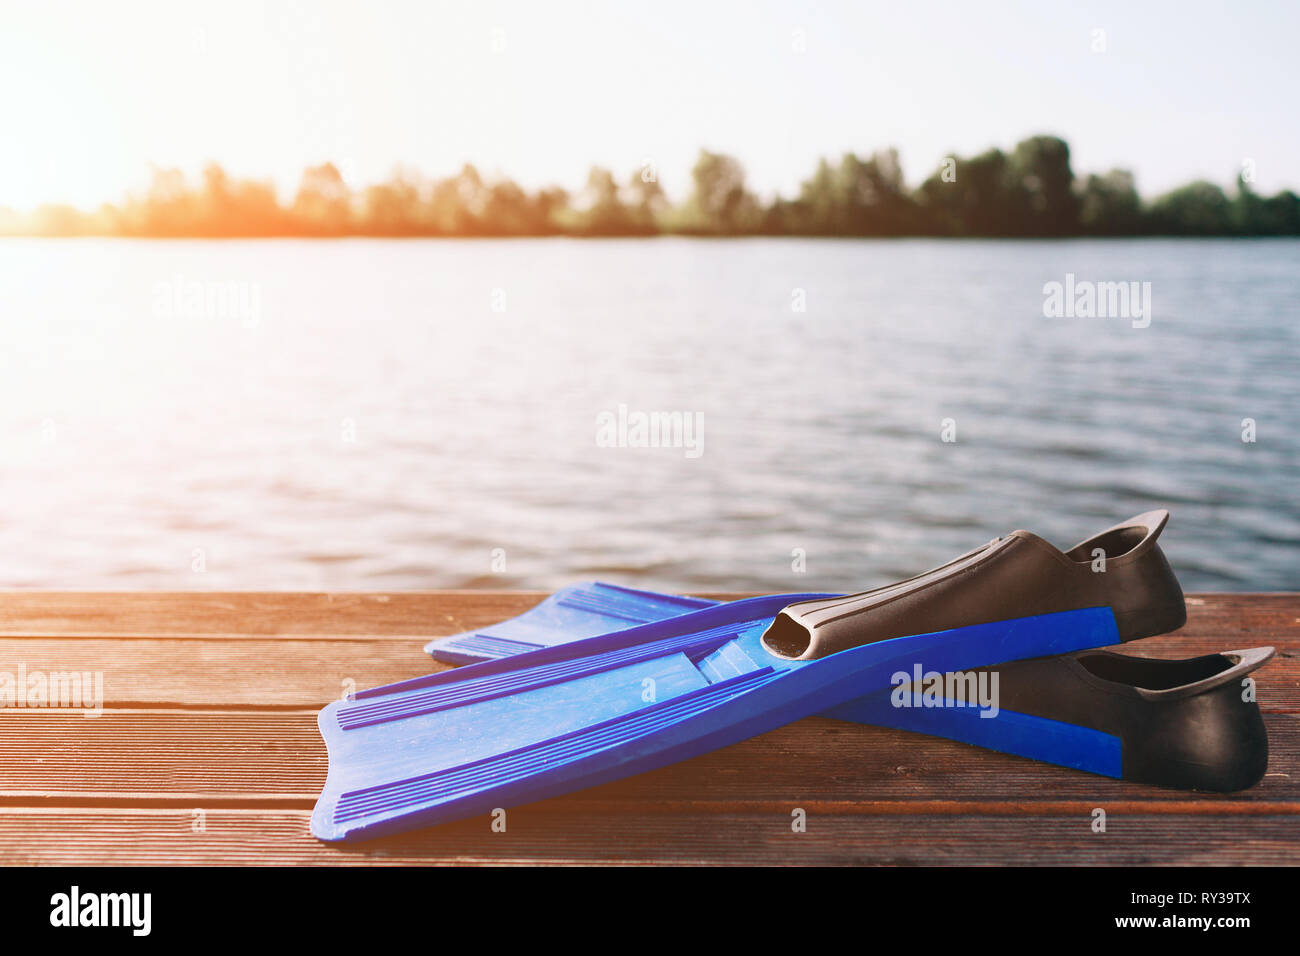 Blue fins for swimming on sand beach. Large river or lake. Sun shines. Clear blu sky. - Stock Image